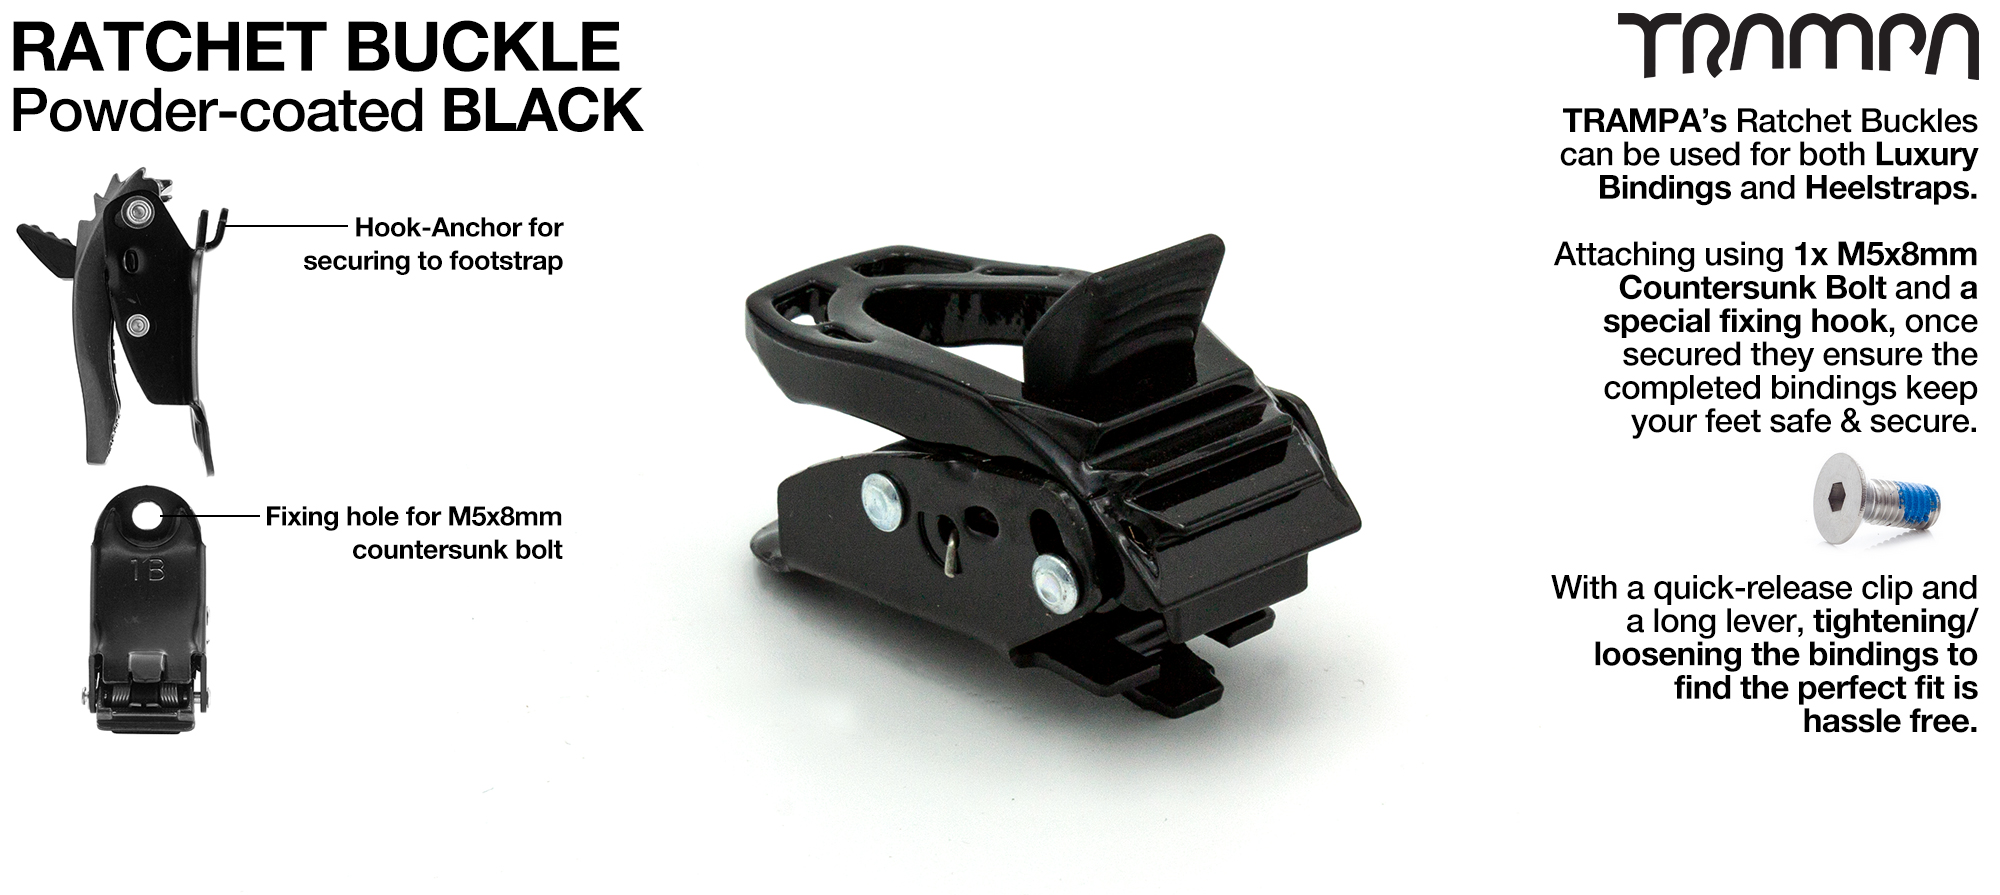 Ratchet Buckle Powder coated Black